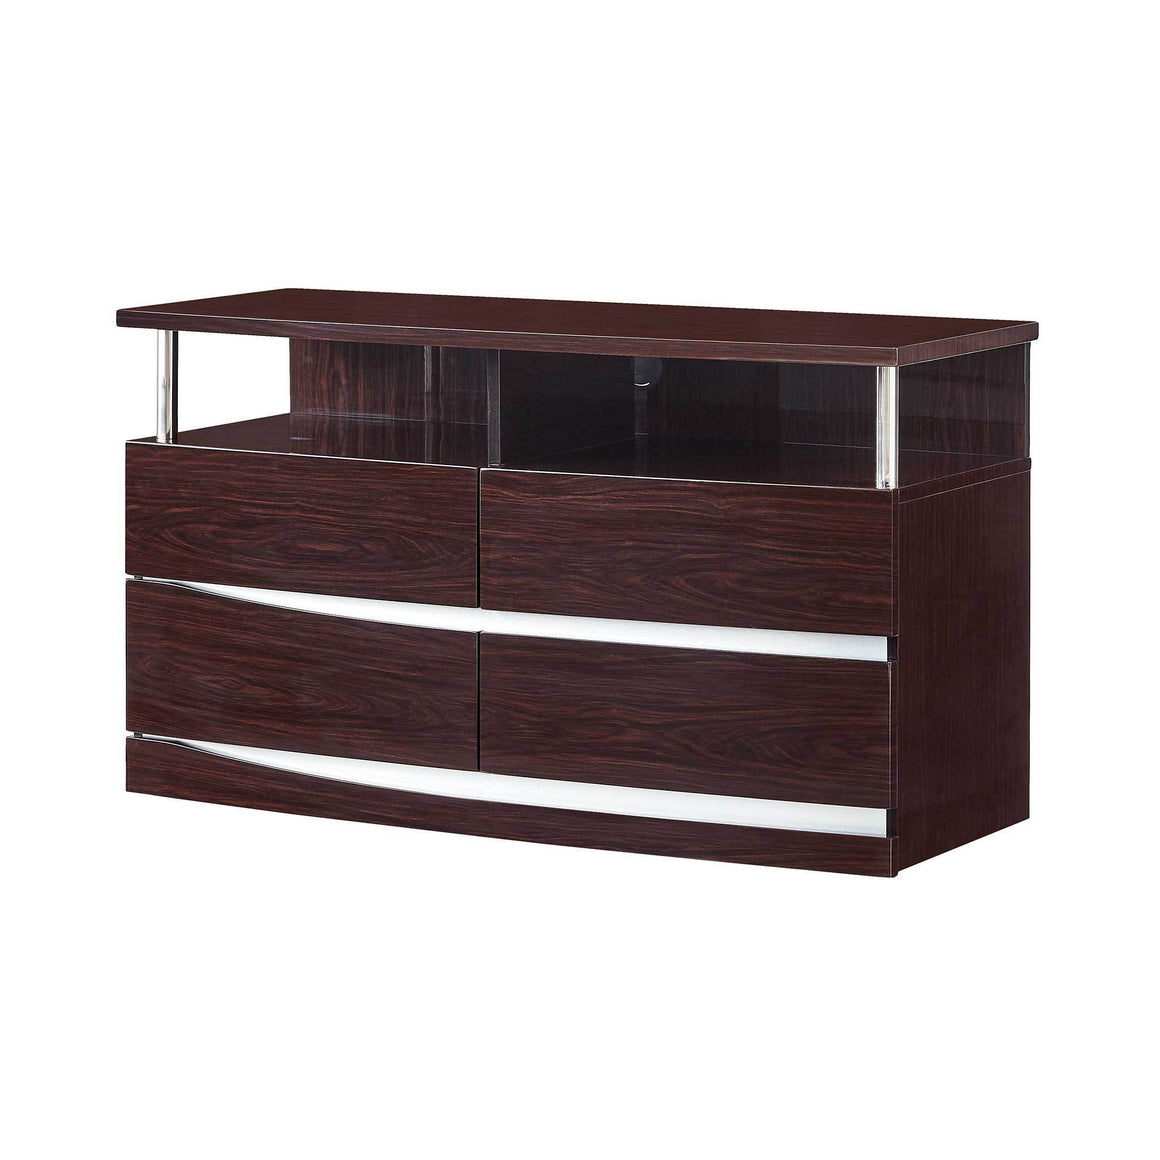 AURORA WENGE-ENTERTAINMENT UNIT